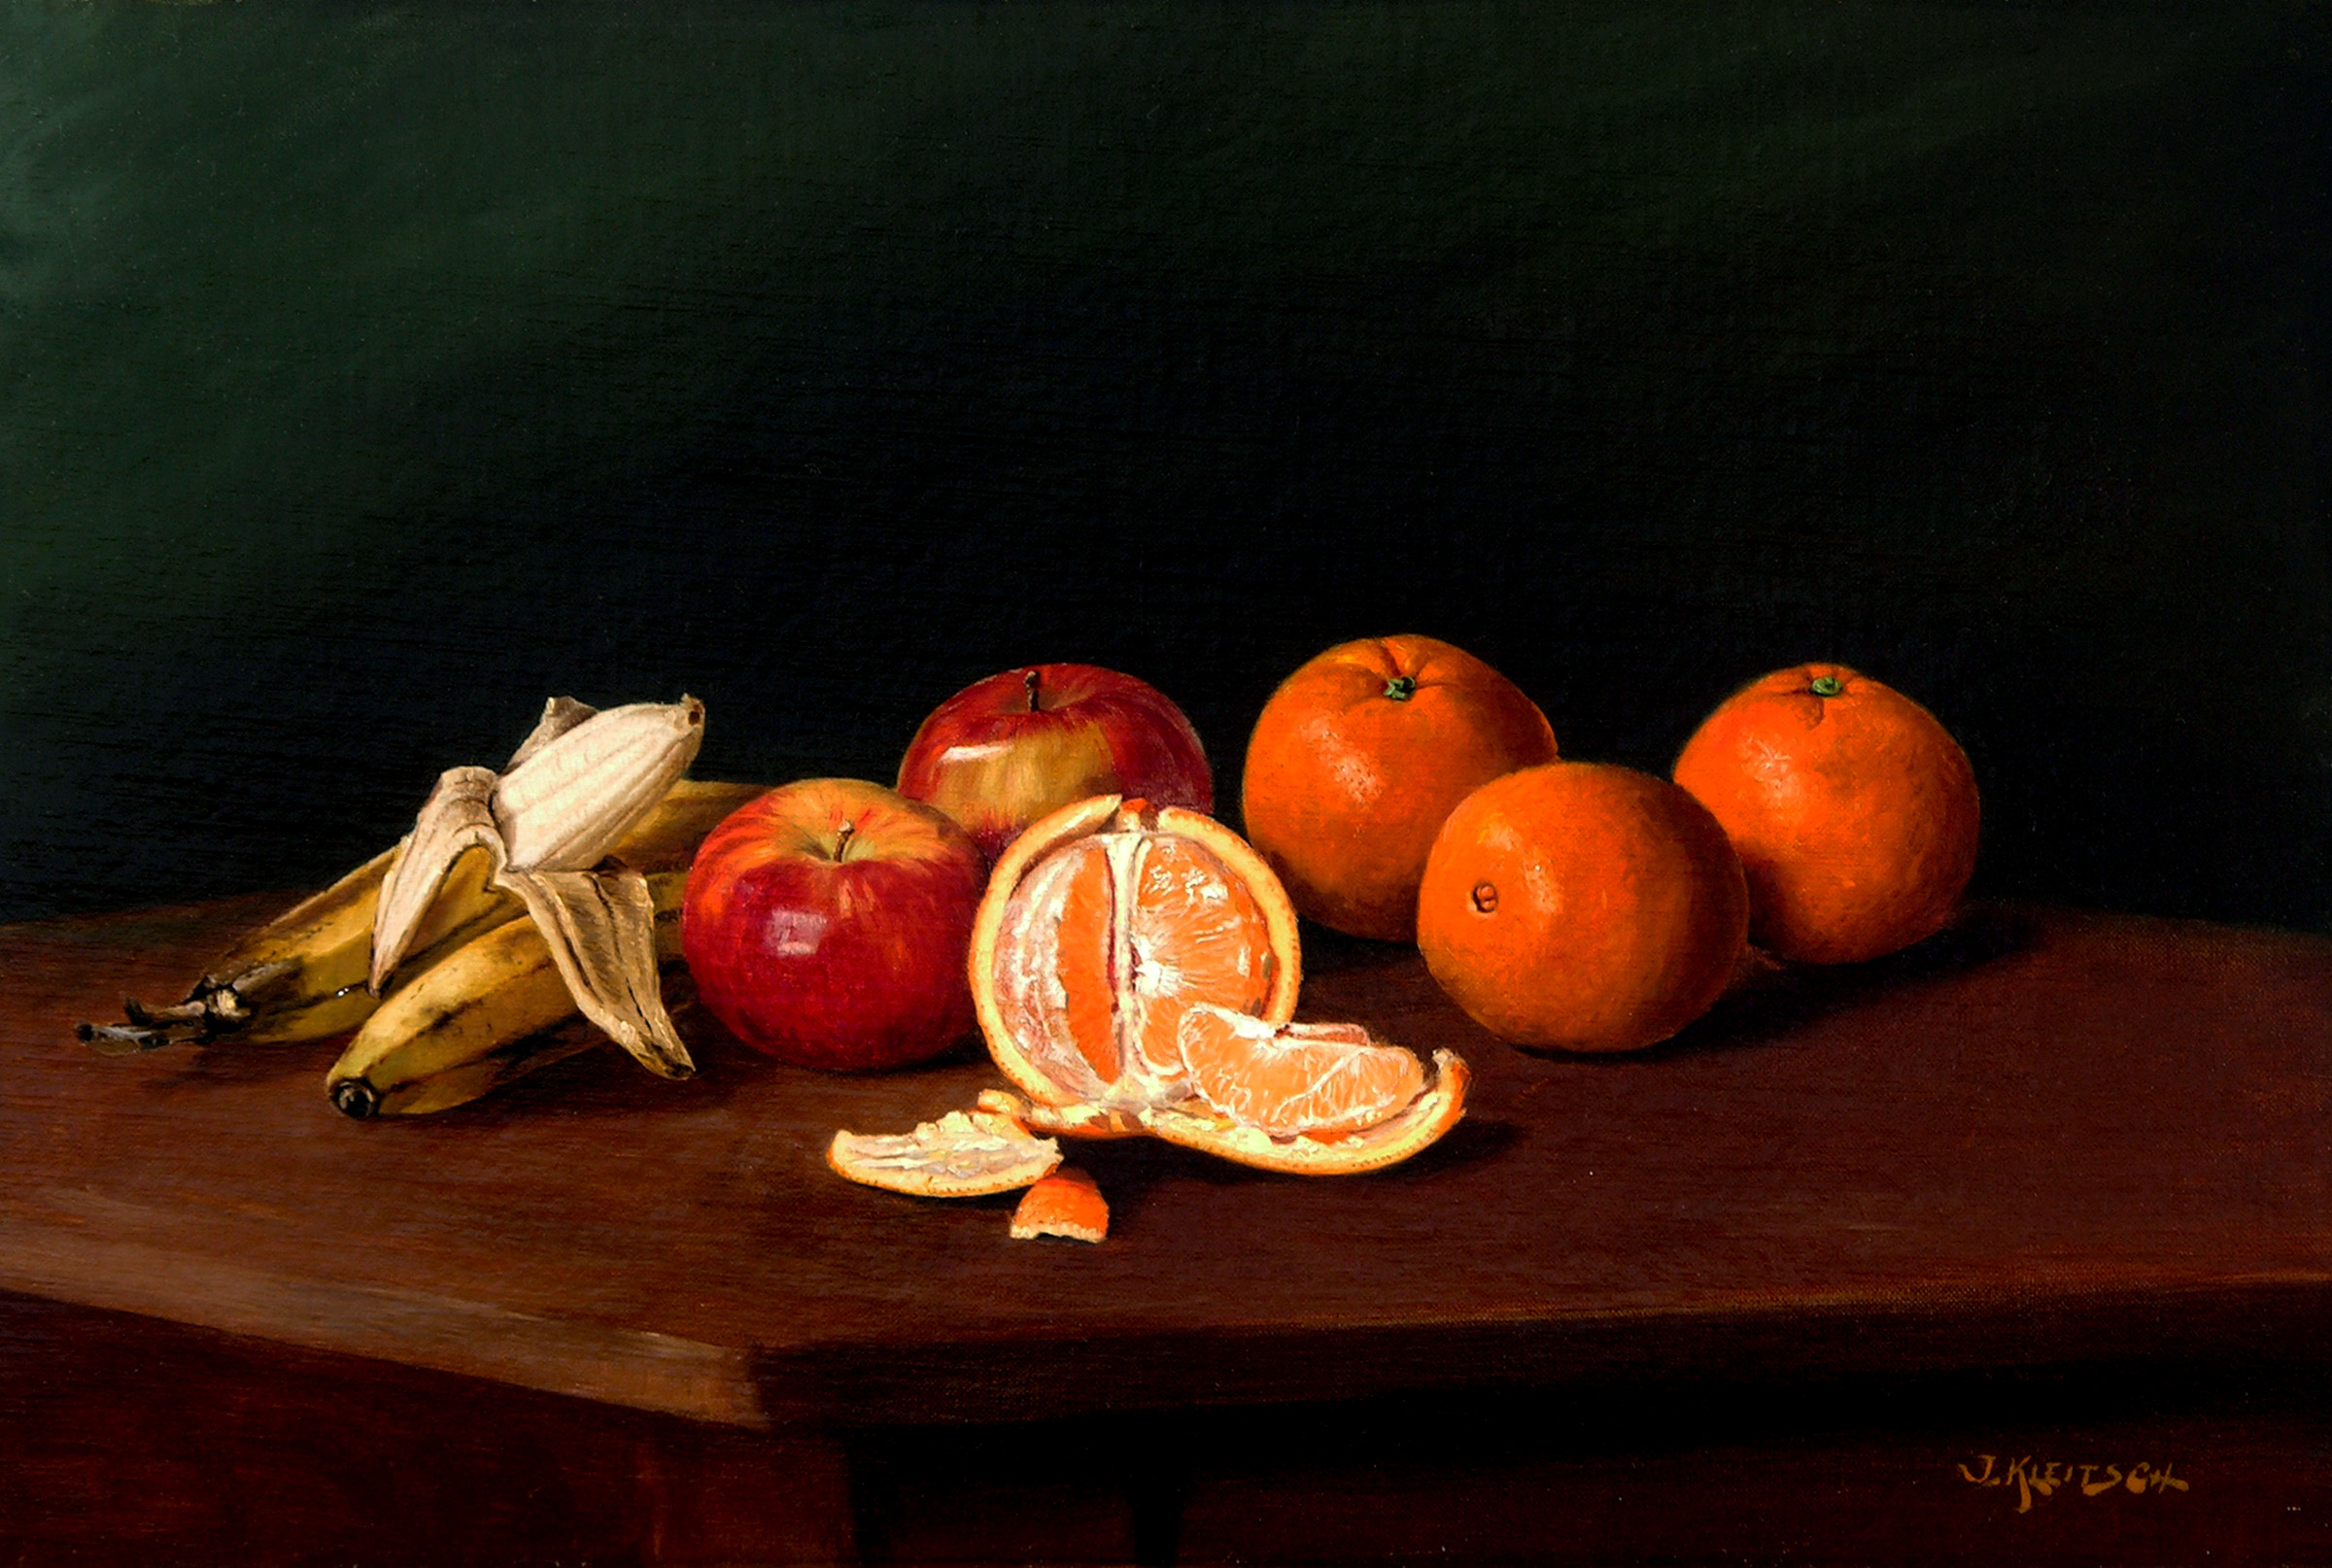 Still Life with Fruit   / Oil on Canvas, 16 x 24 in. / Private Collection